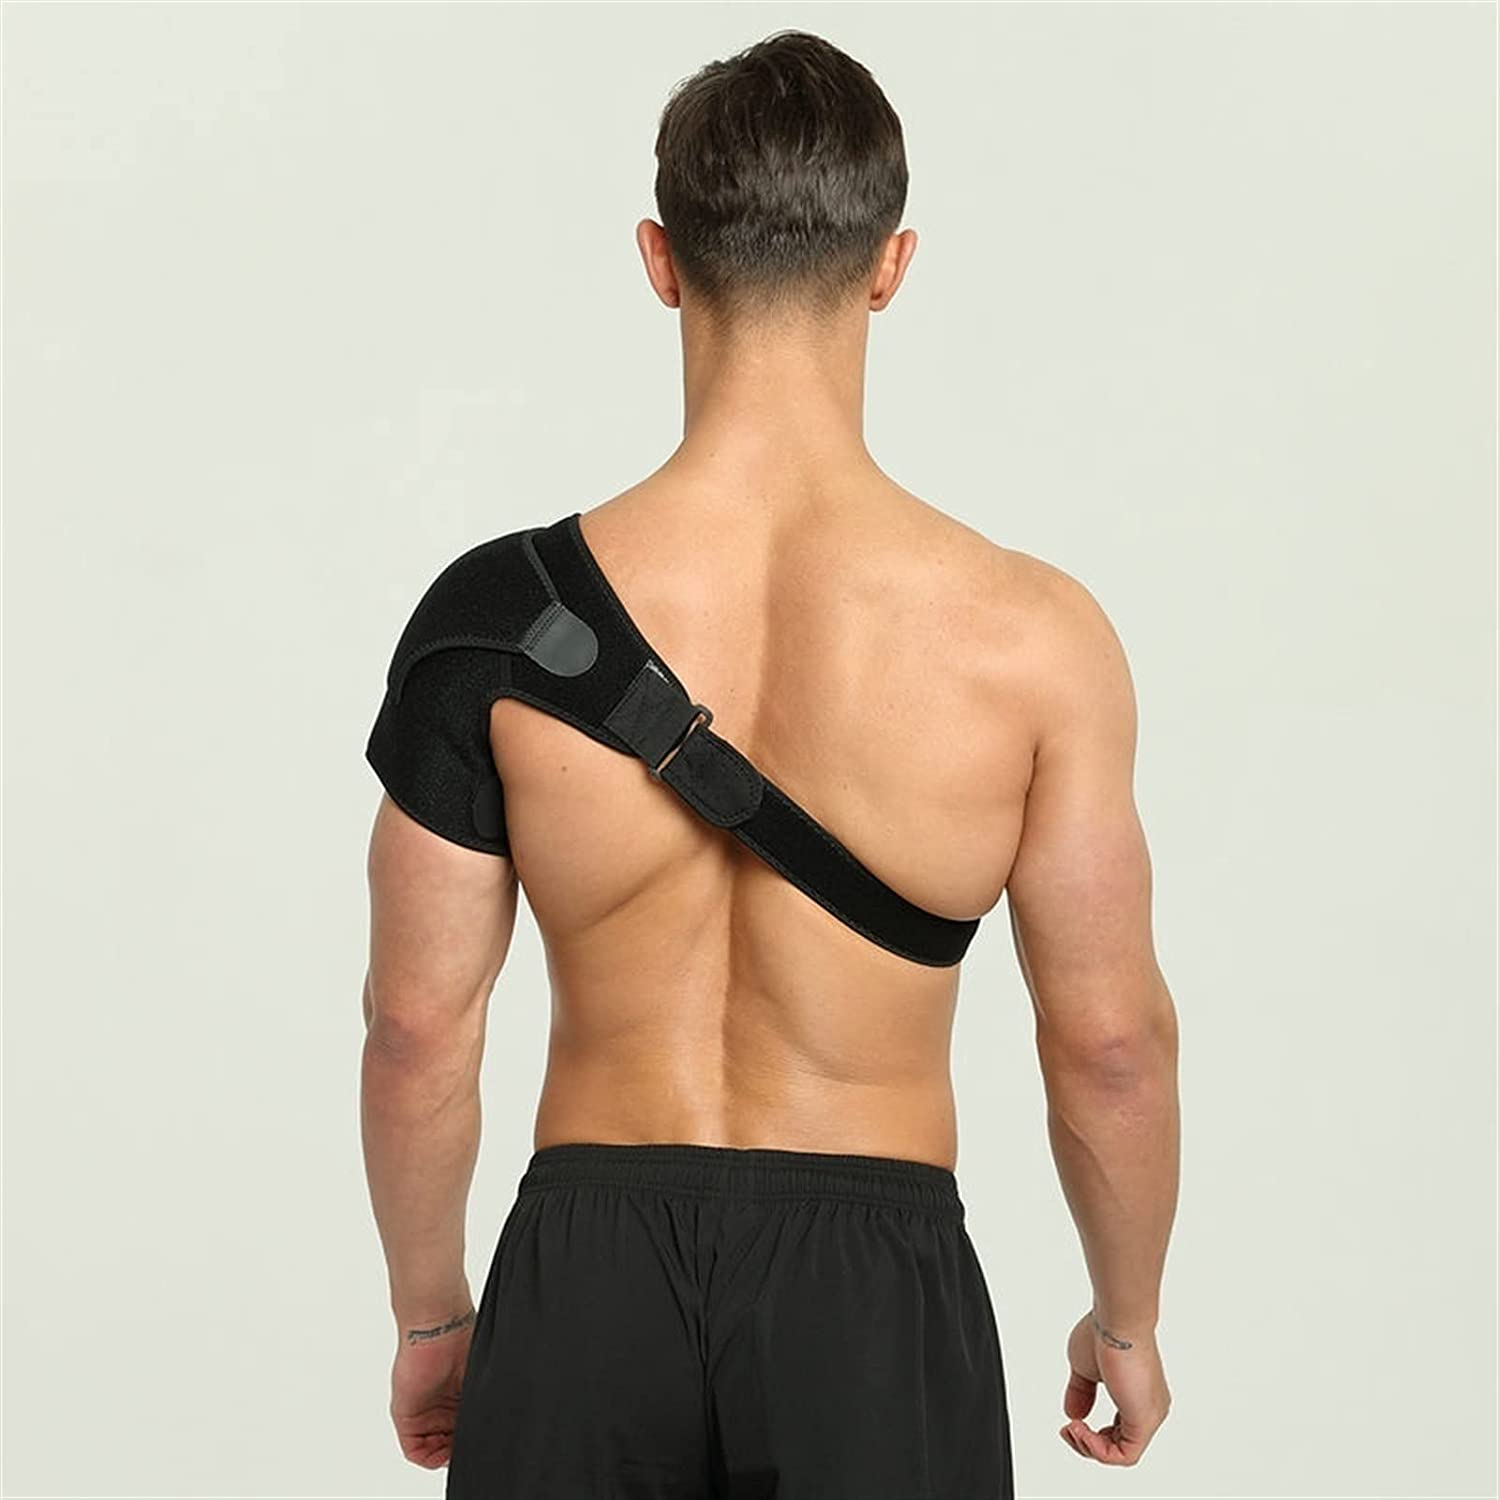 HTTDD Shoulder Brace Adjustable Guards Th for Ranking TOP14 Store Physical